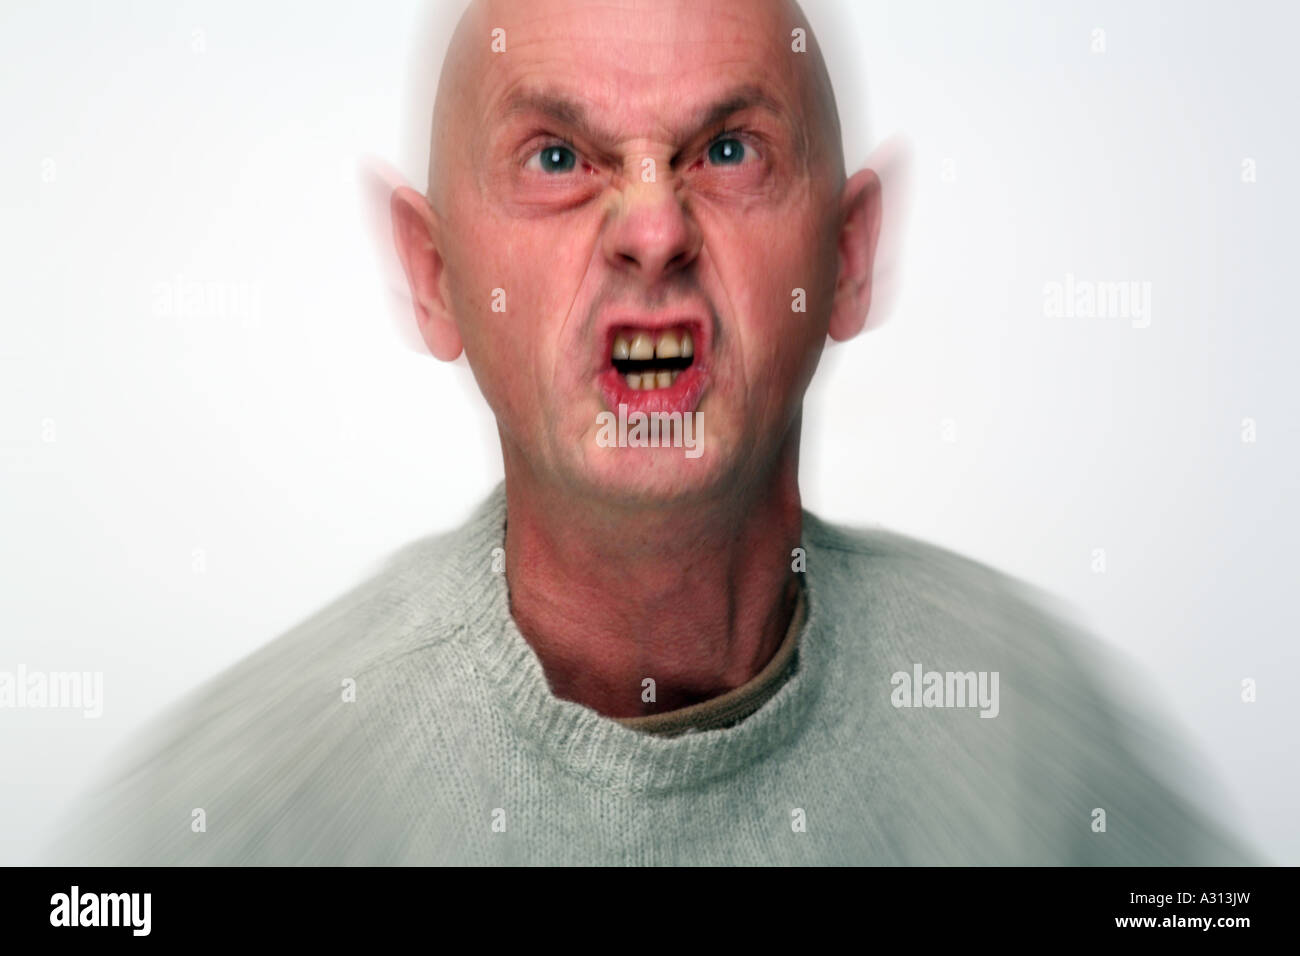 action image of a bald man in a rage - Stock Image